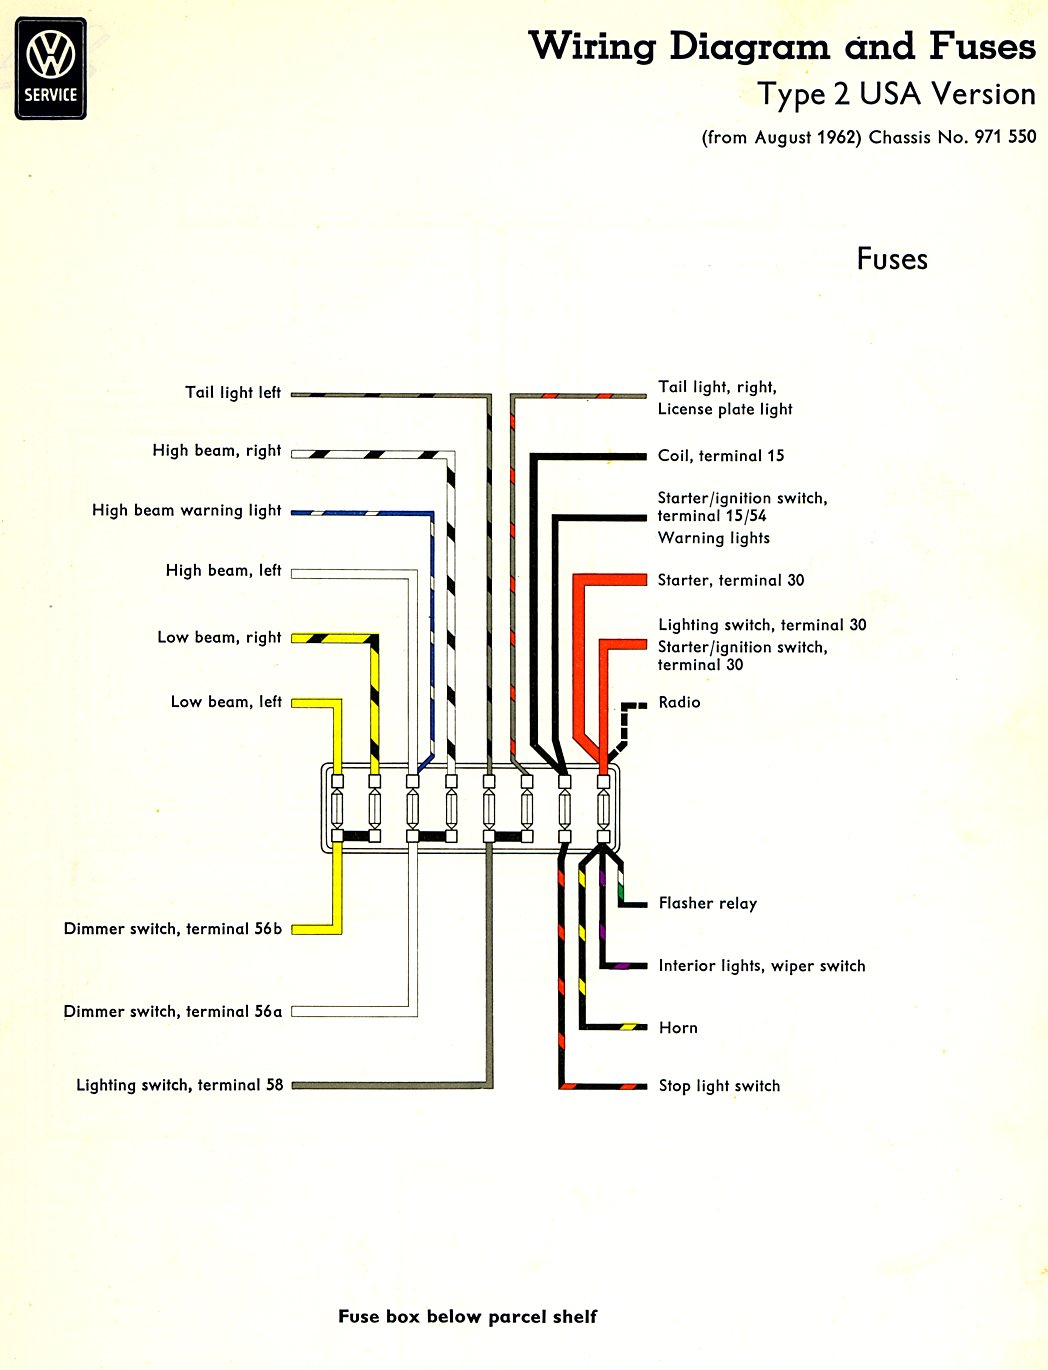 Type 2 Wiring Diagrams Old Home Red Black White Along With Wire Harness Additionally